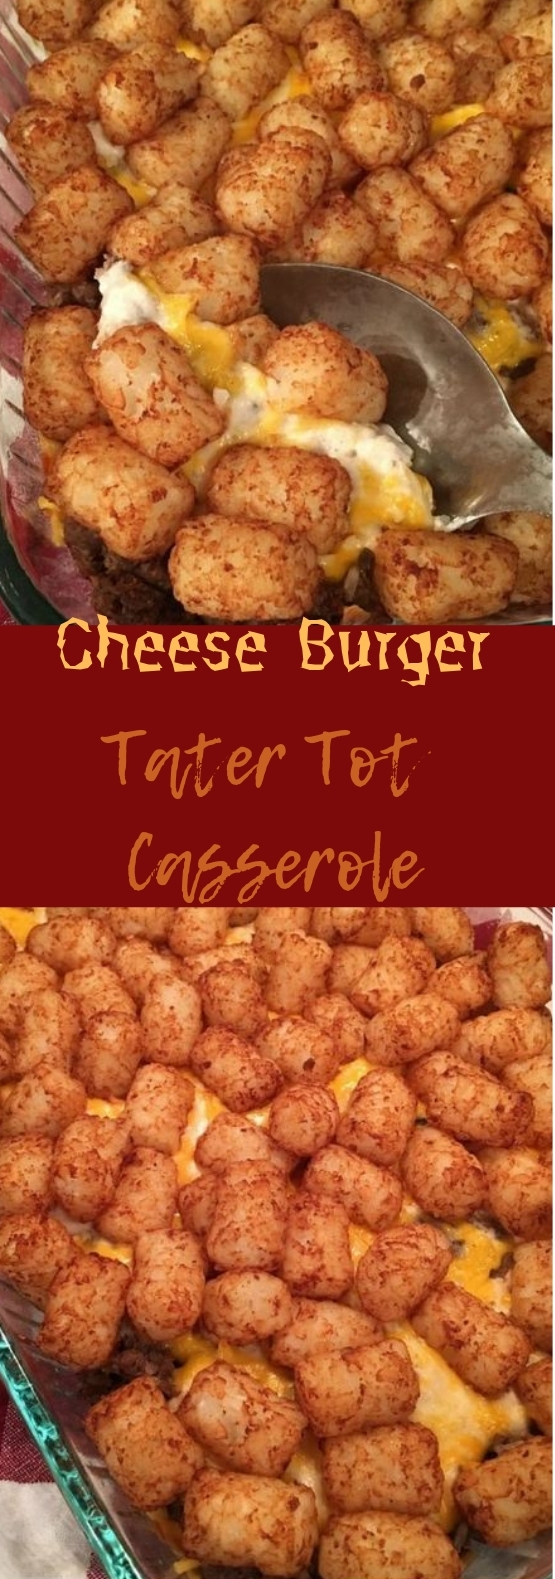 Cheeseburger Tater Tot Casserole #deliciousrecipe #dinner